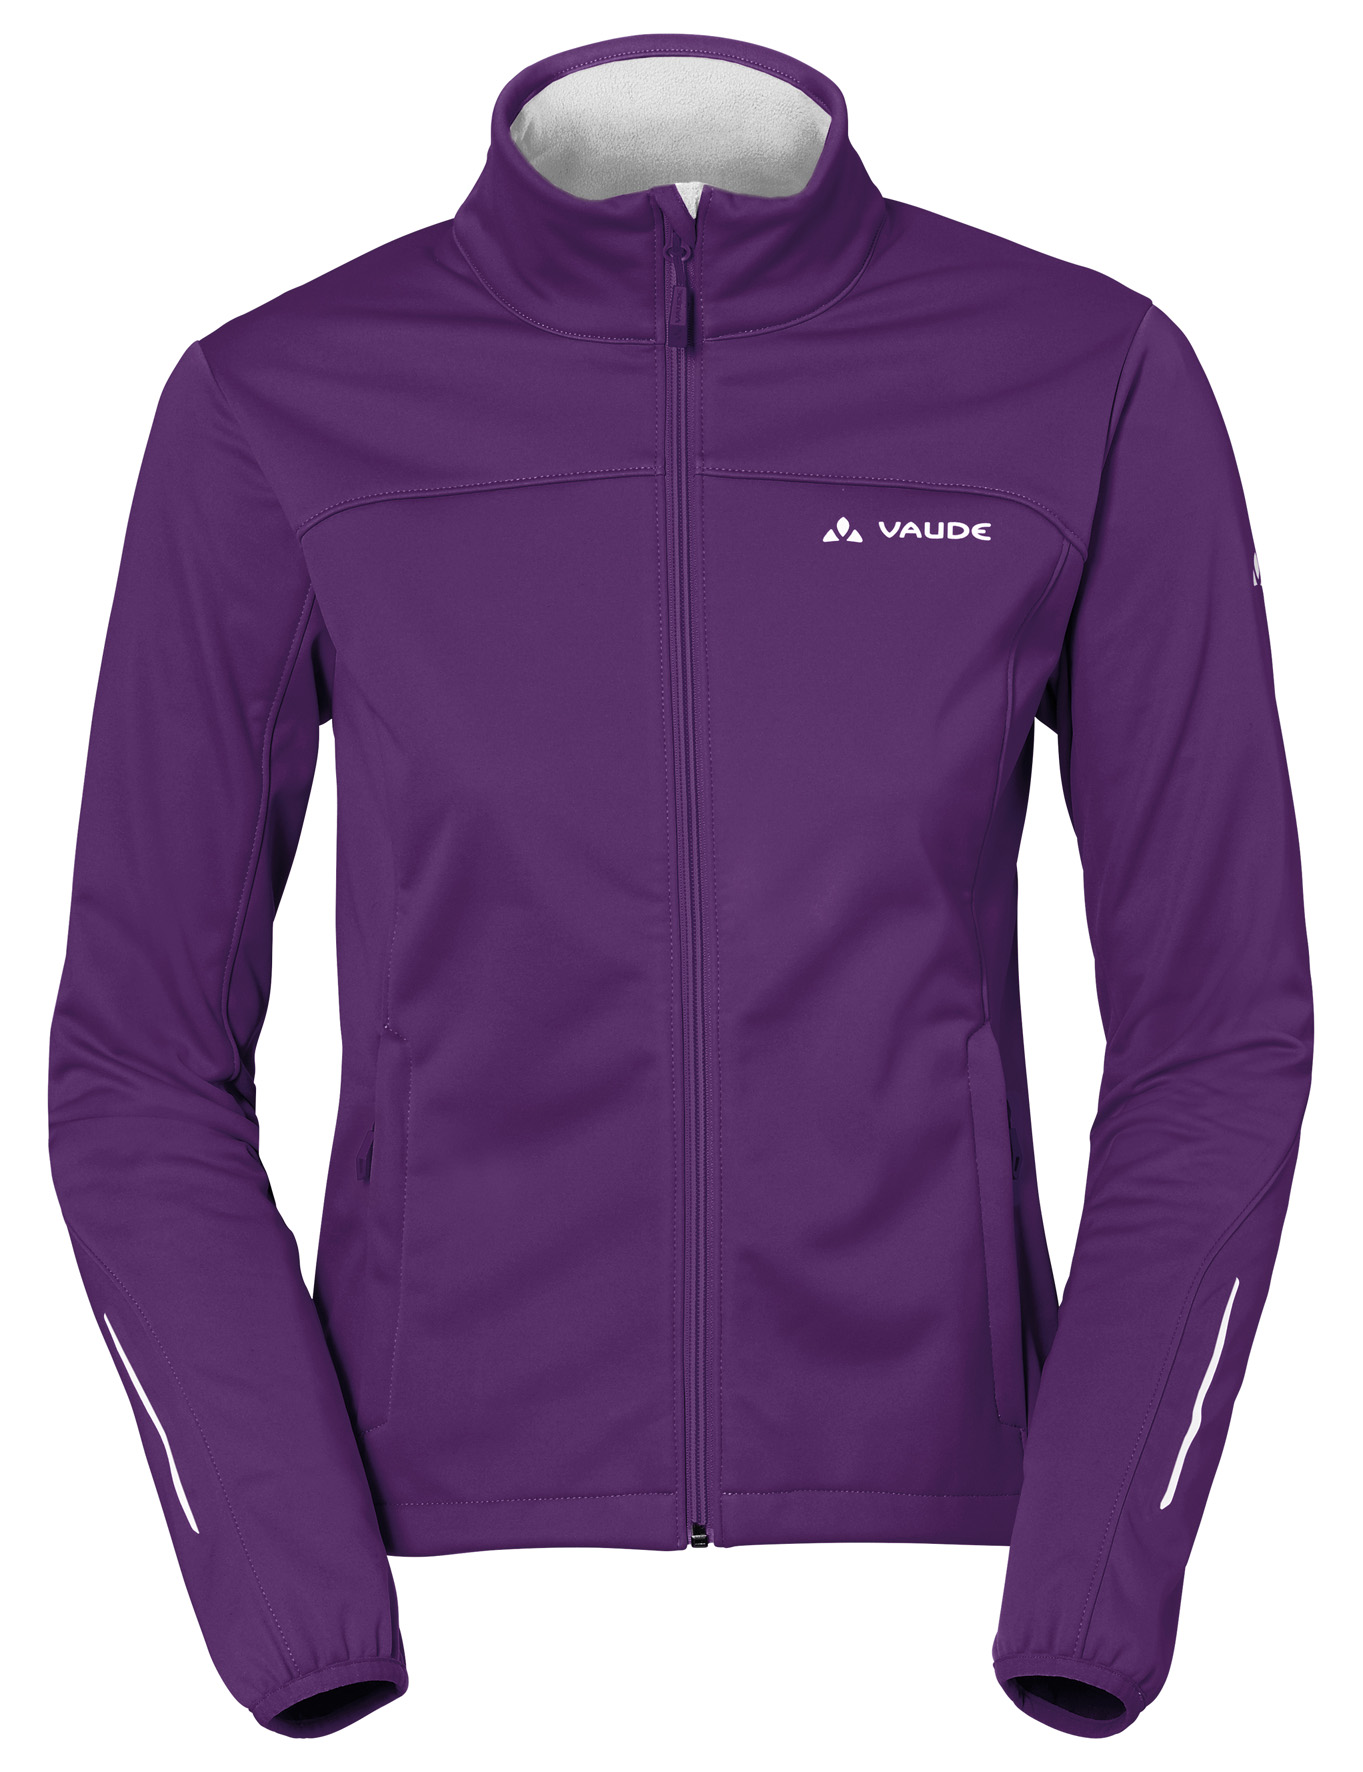 VAUDE Women´s Wintry Jacket III elderberry Größe 42 - schneider-sports